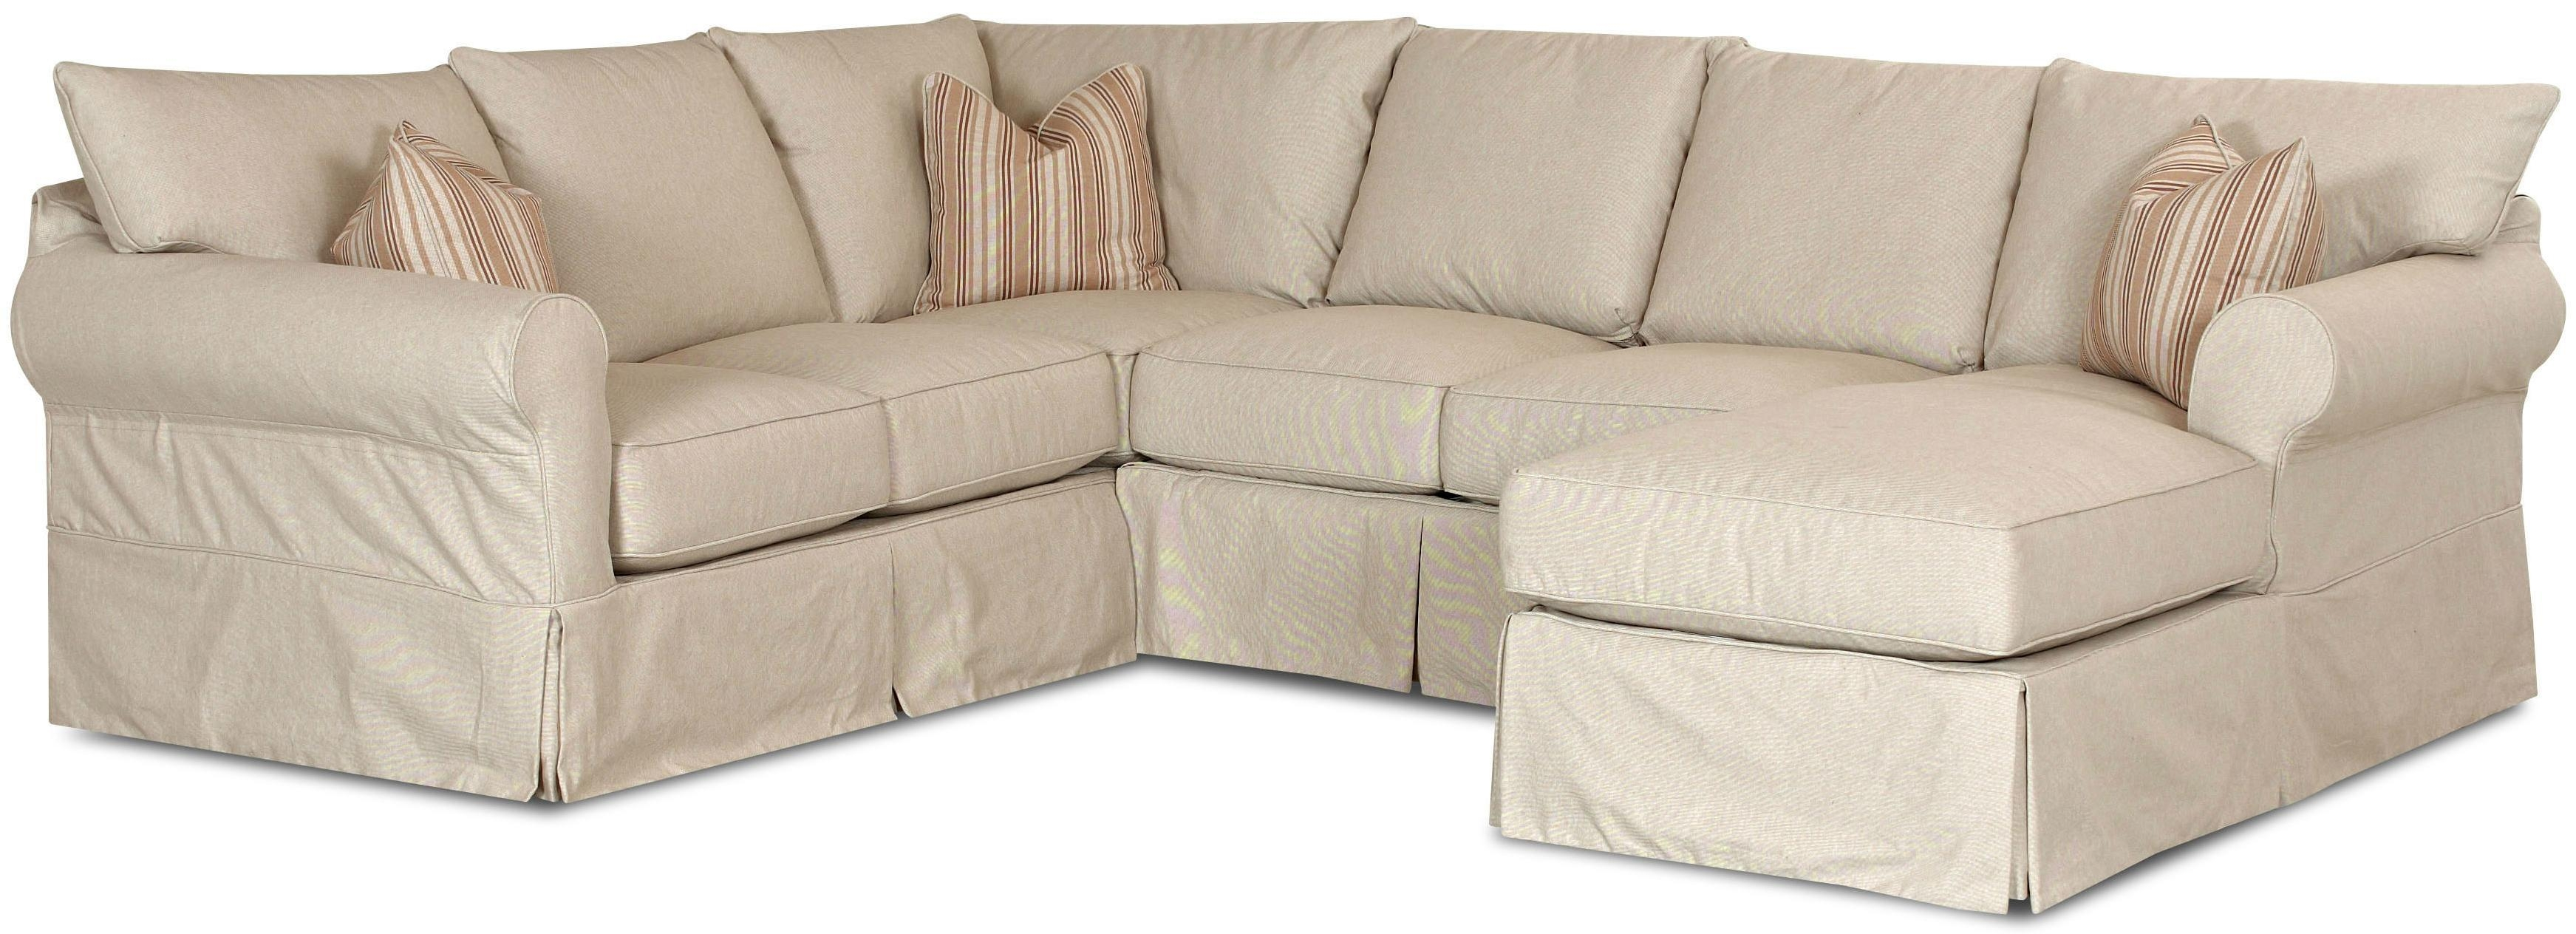 stretch slipcovers for sofas stanton seattle 20 photos 3 piece sofa covers   ideas